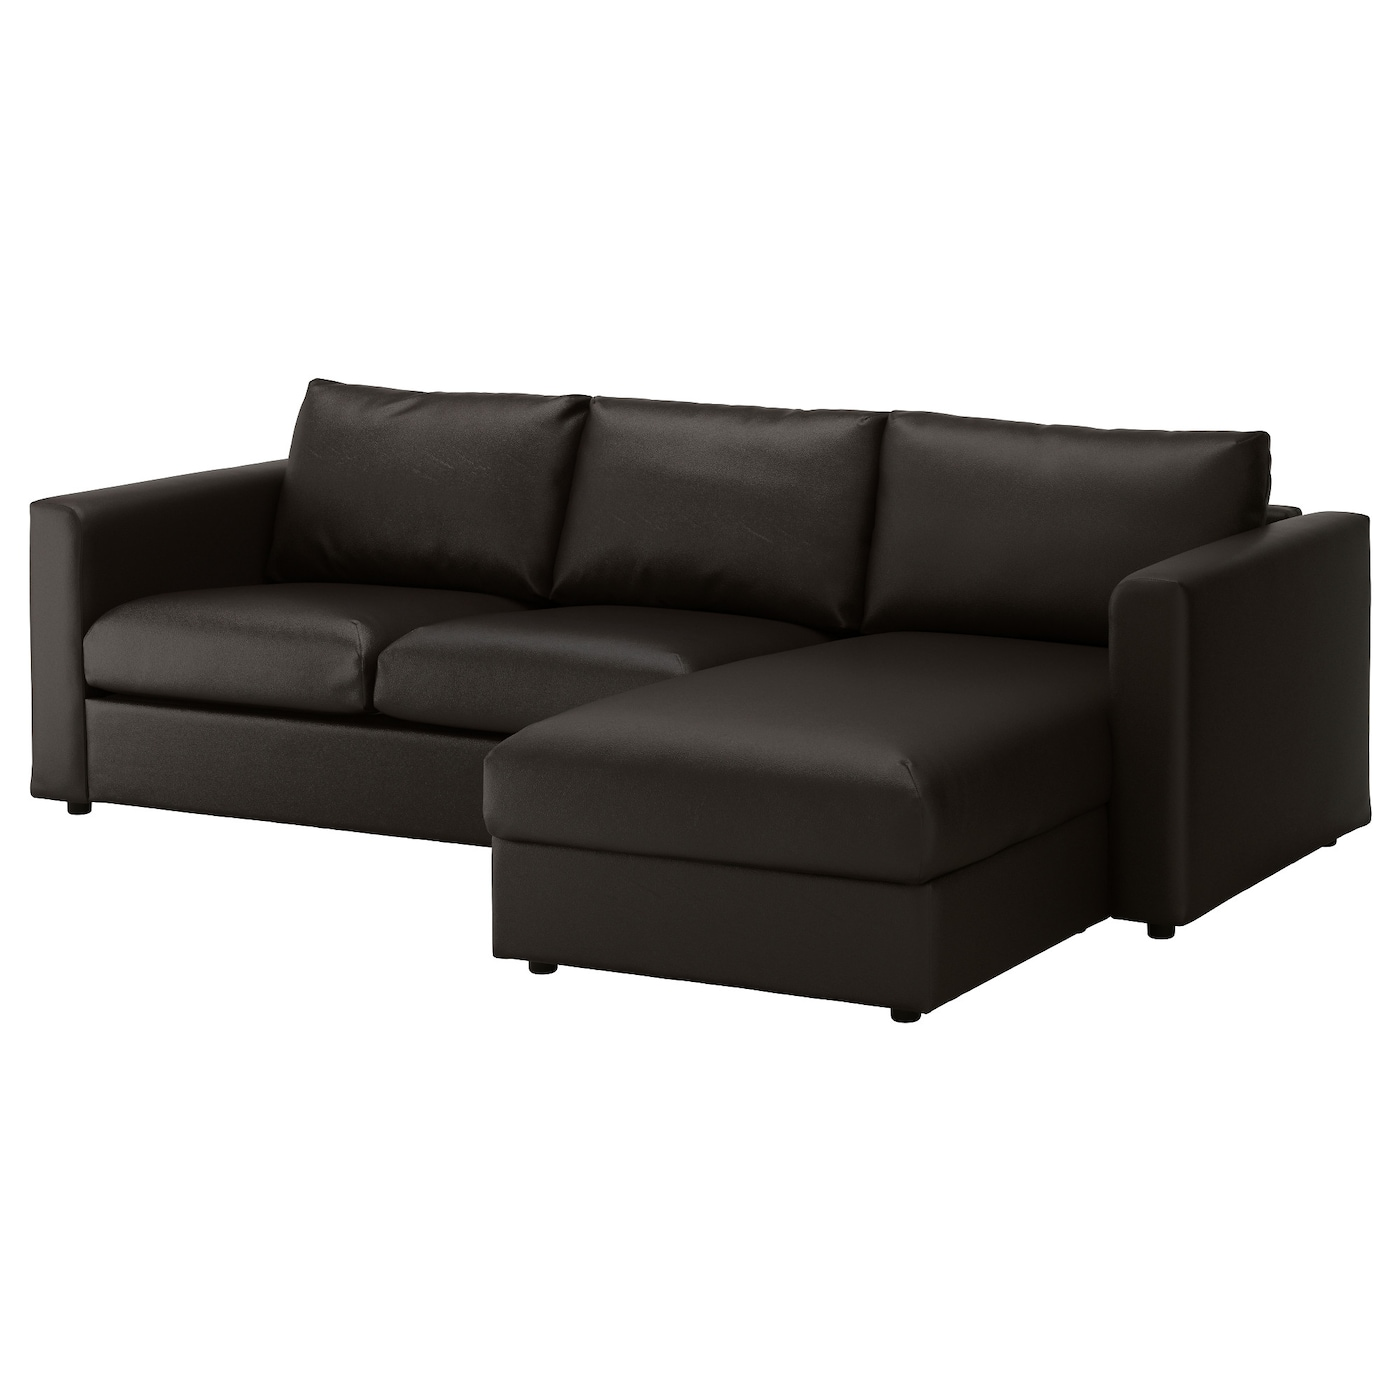 Vimle 3 seat sofa with chaise longue farsta black ikea for Black sectional with chaise